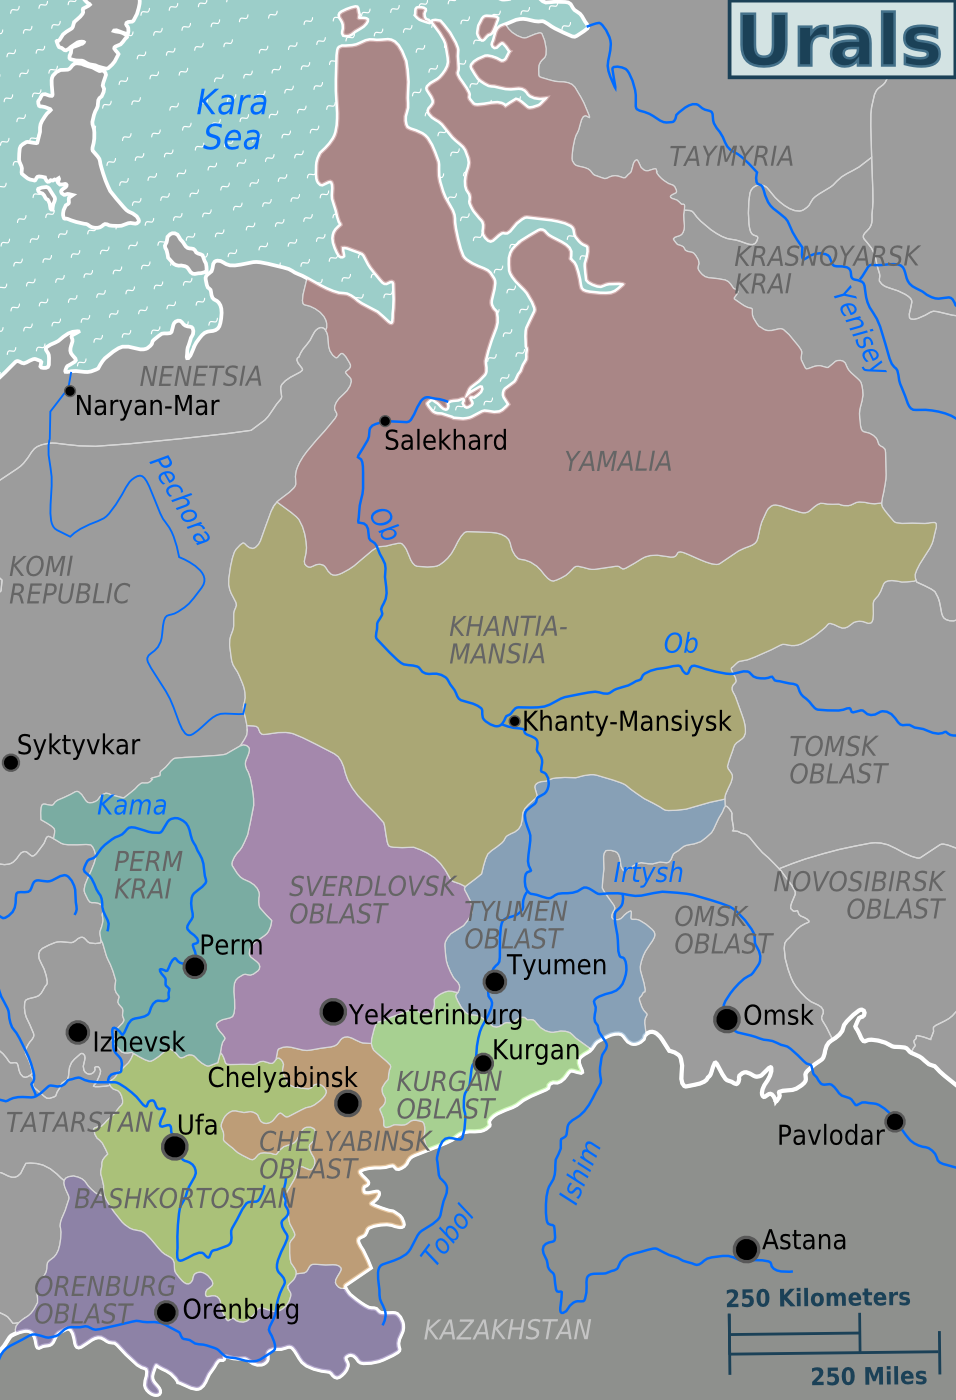 urals – travel guide at wikivoyage -